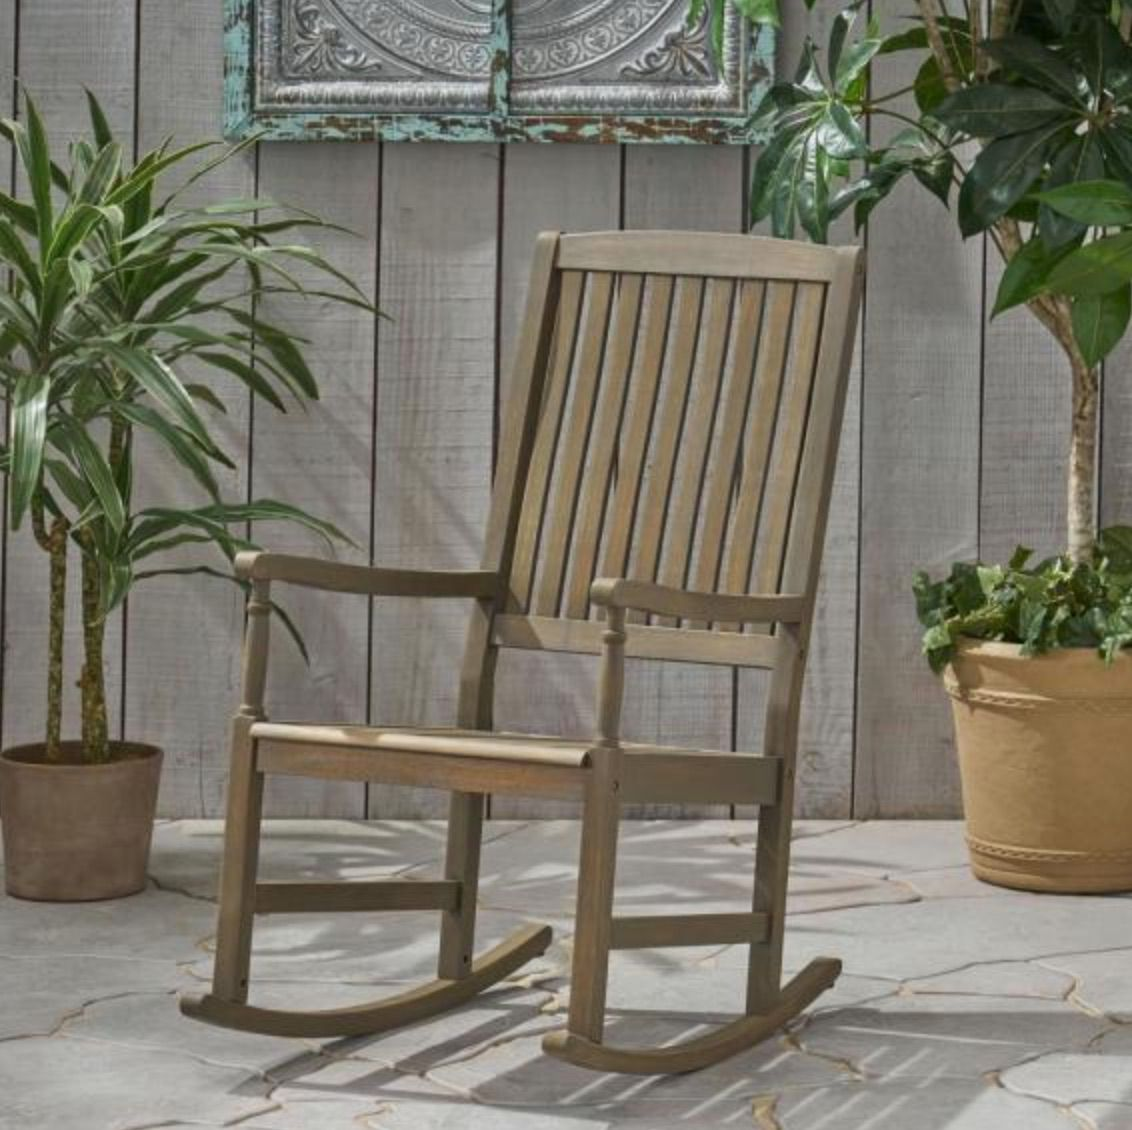 The 8 Best Rocking Chairs Of 2021